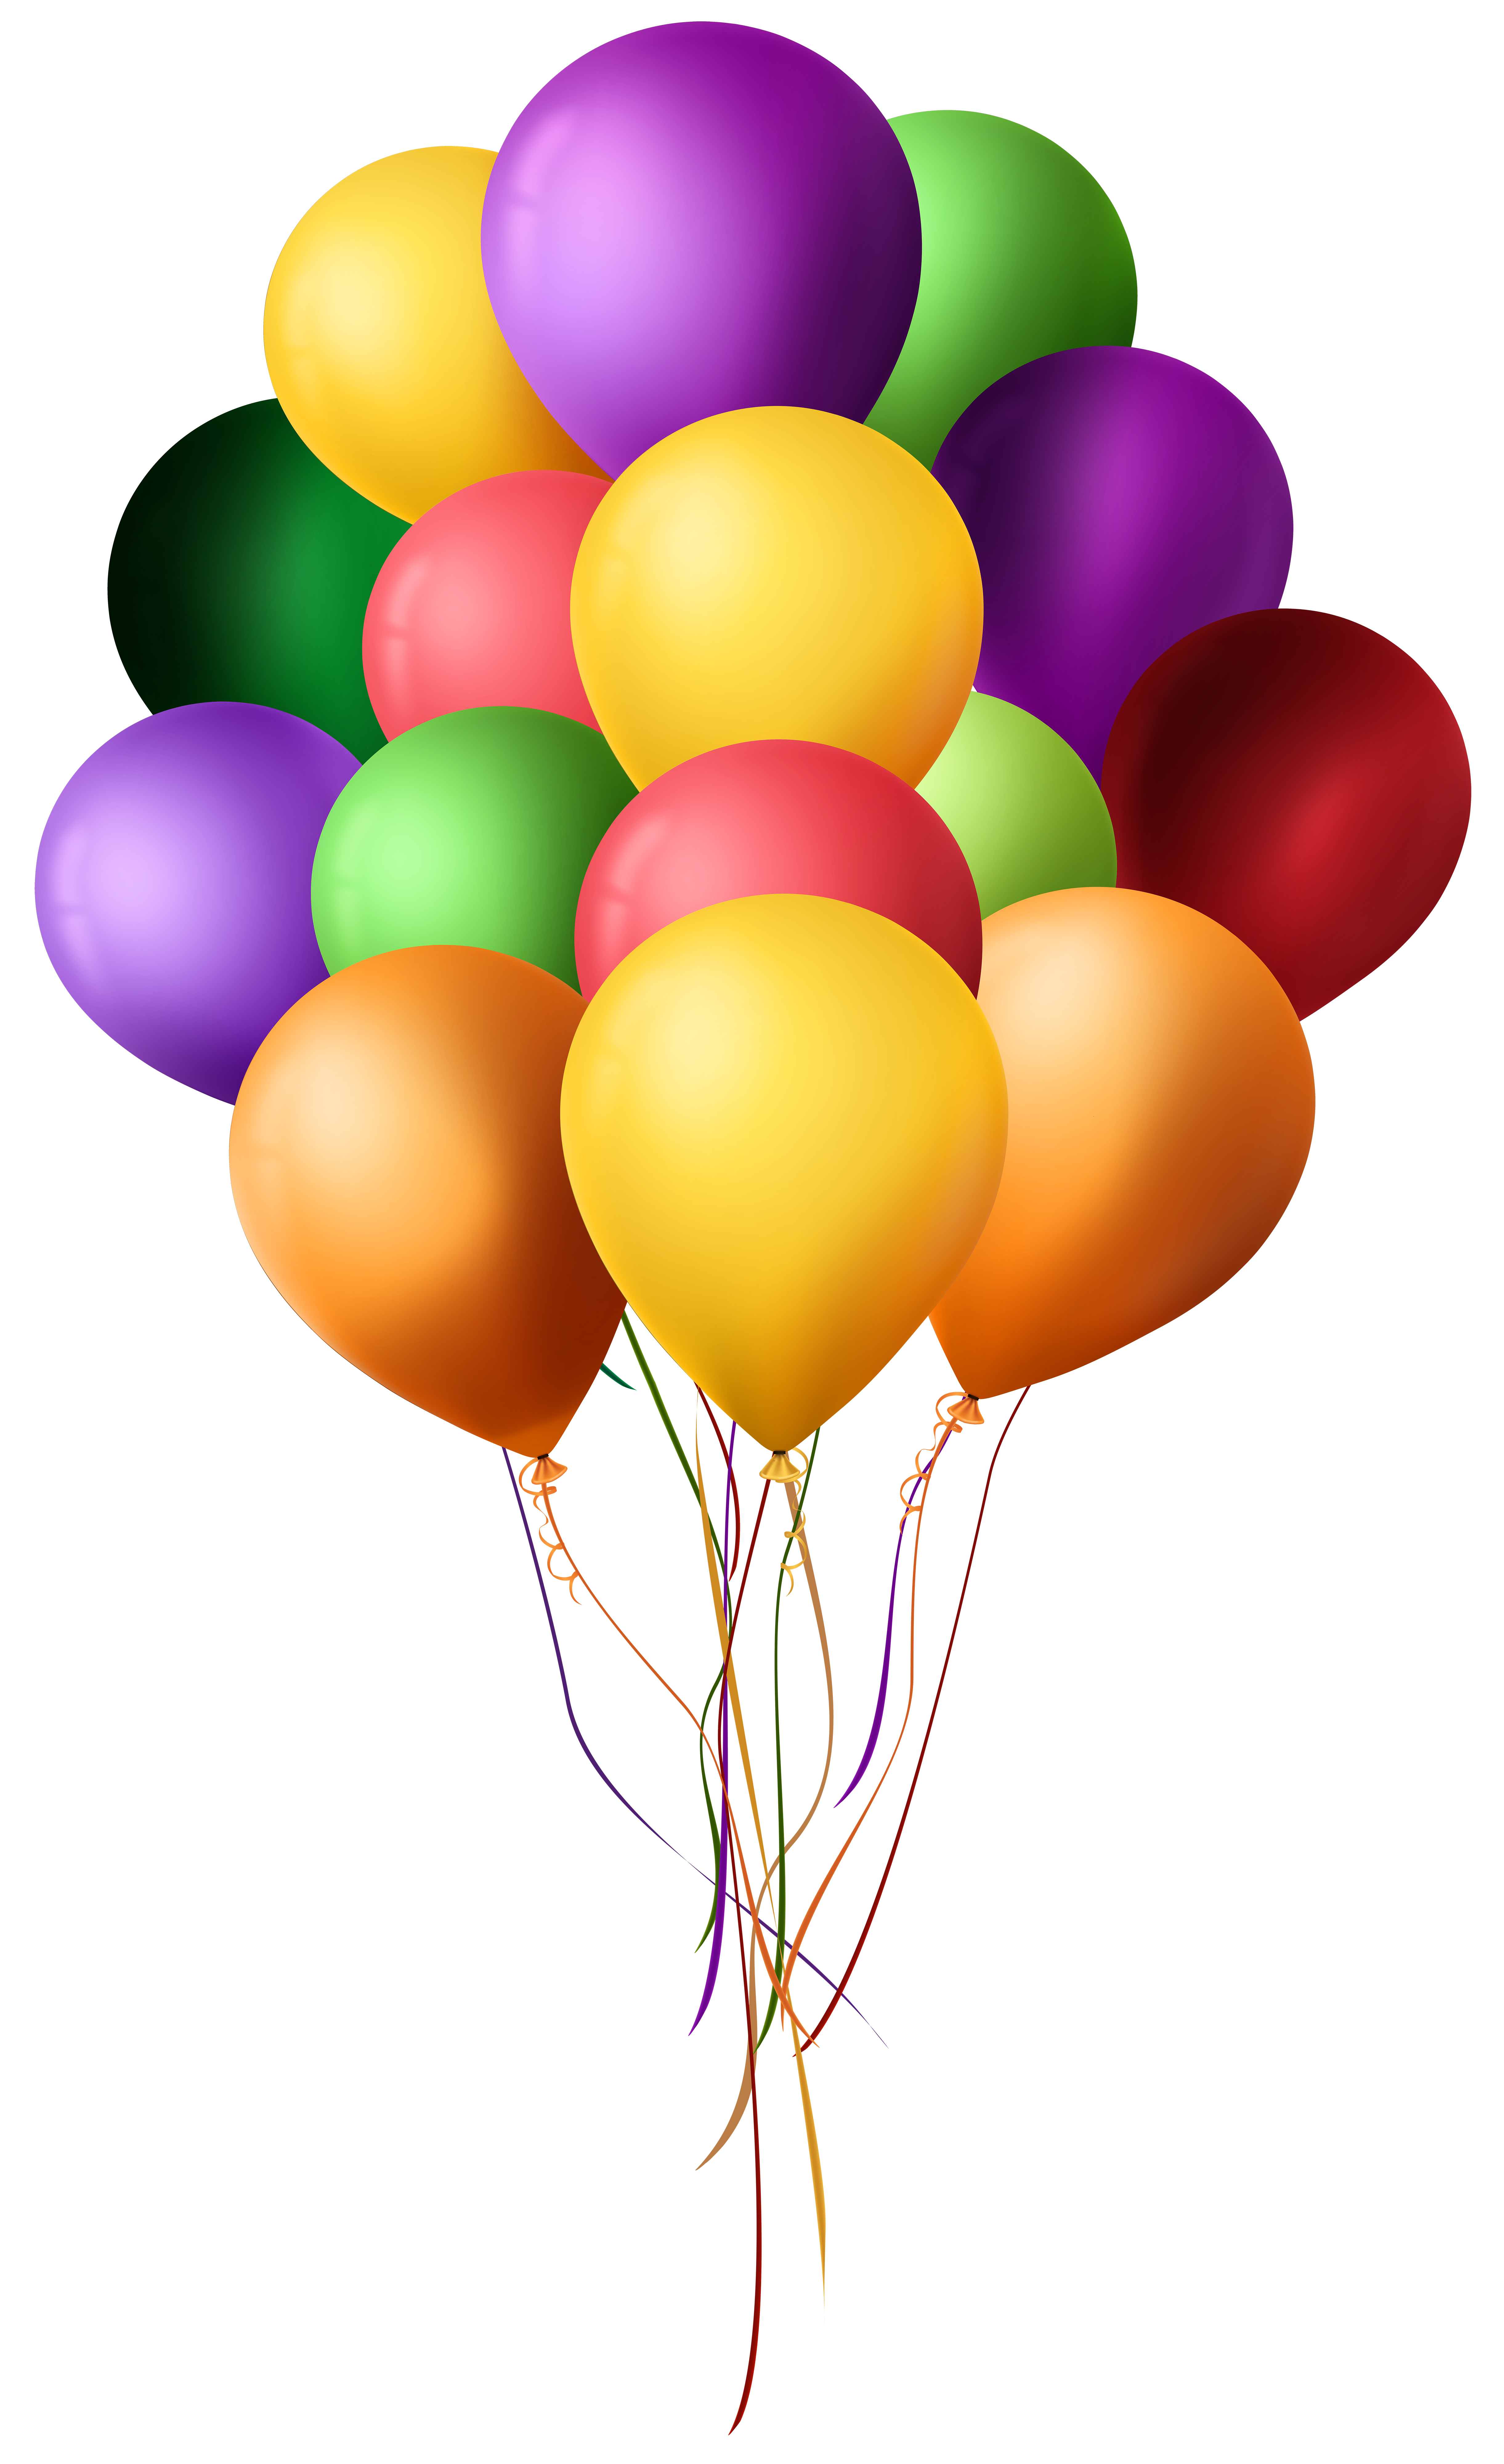 Balloon clipart png. Bunch of balloons clip